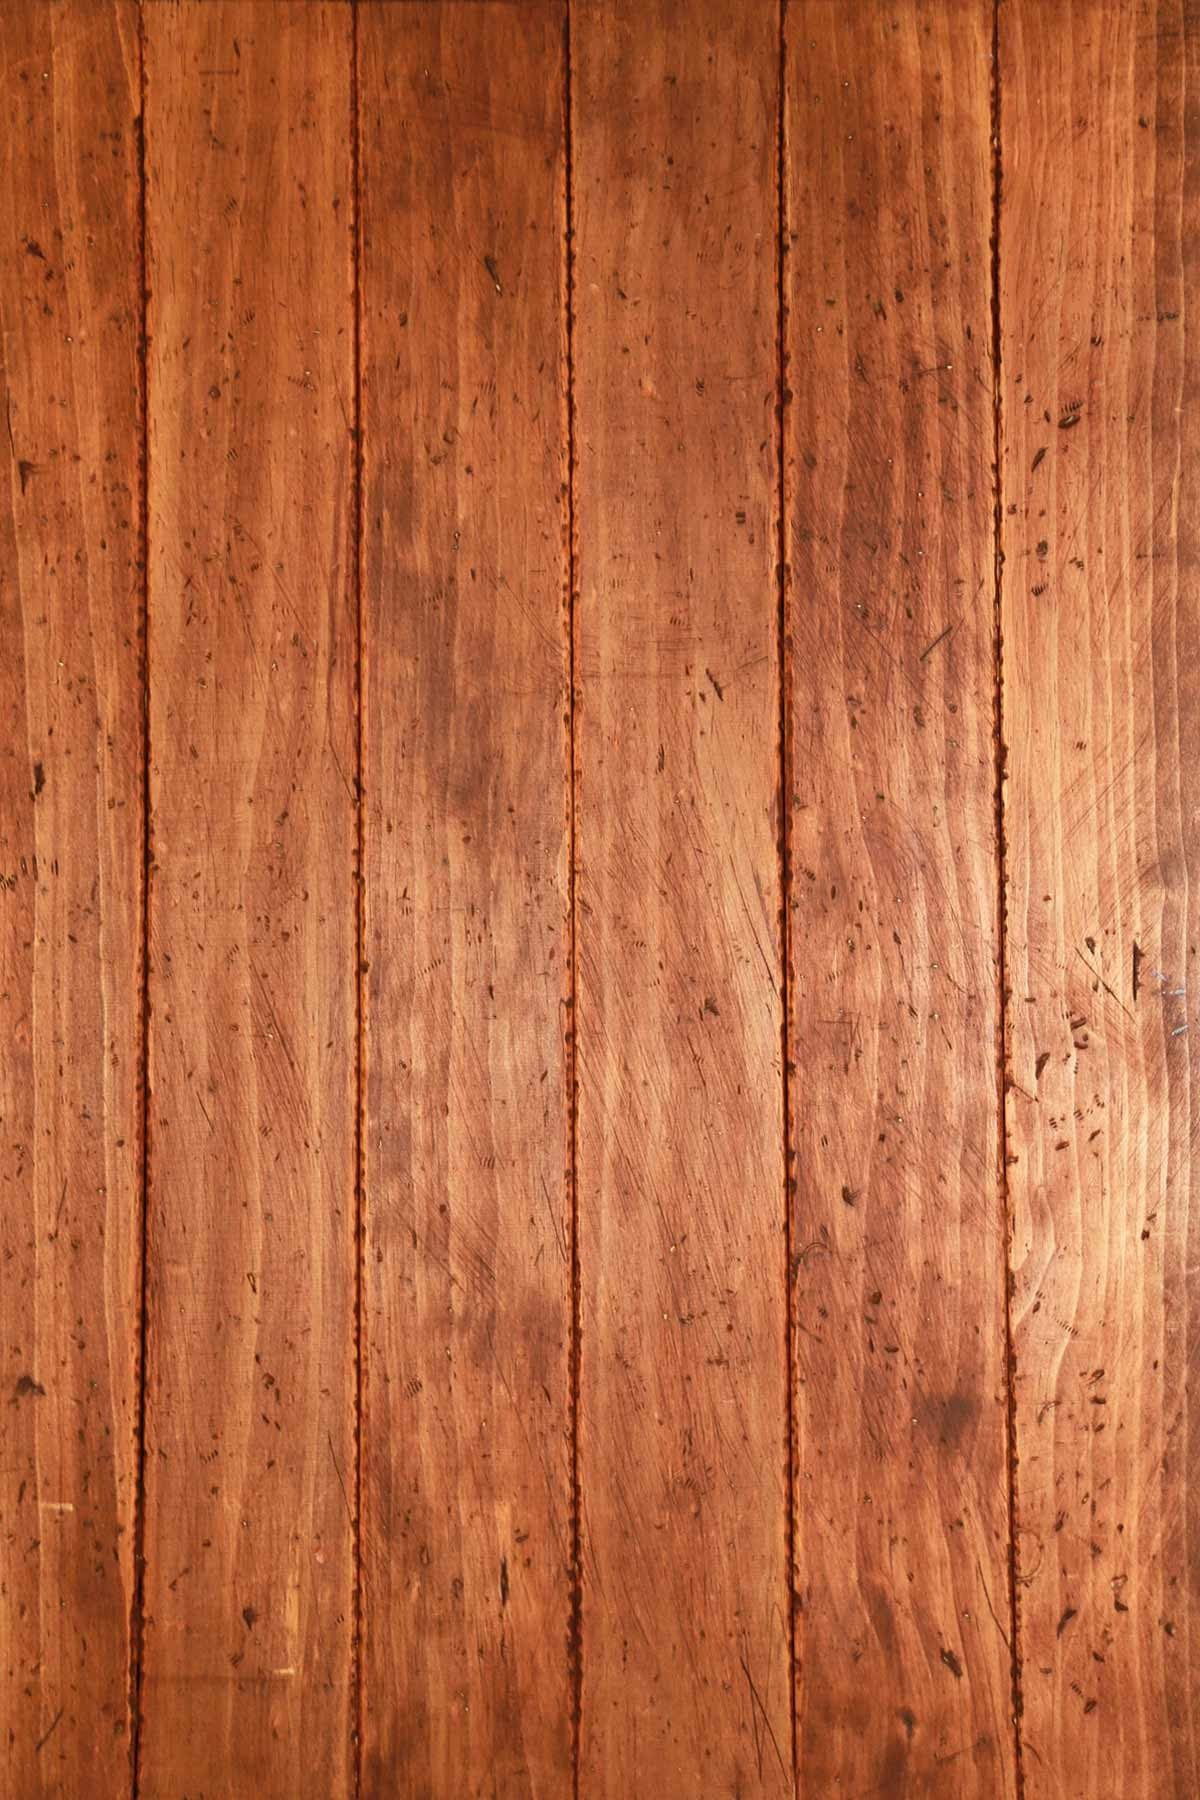 finished-stained-pine-wood-photography-background-1200×1800